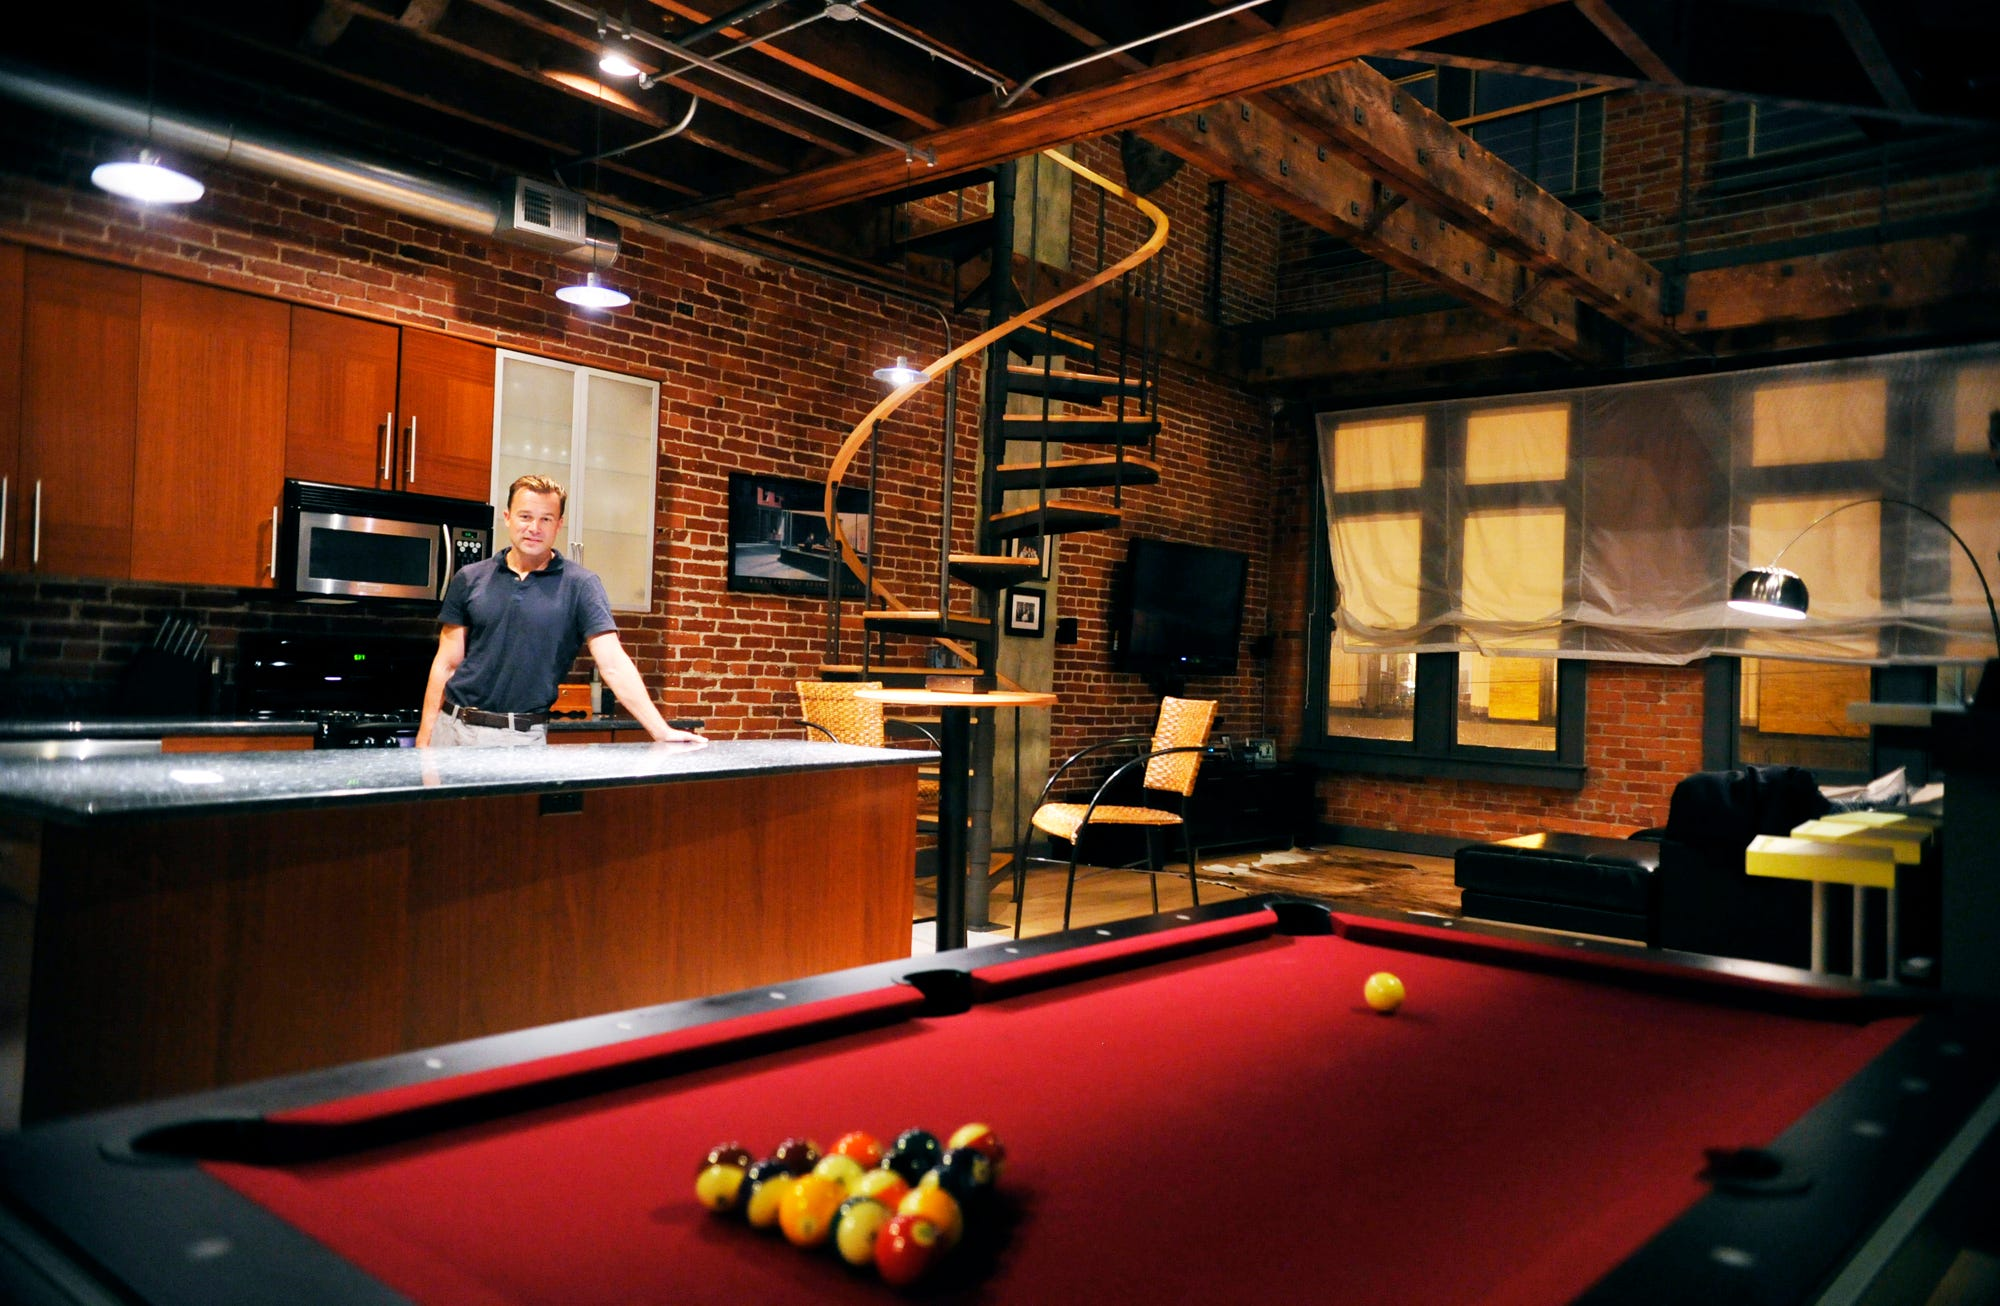 Bachelor Pad Decor: What Guys Should Know About Creating A Sleek, Usable  Space